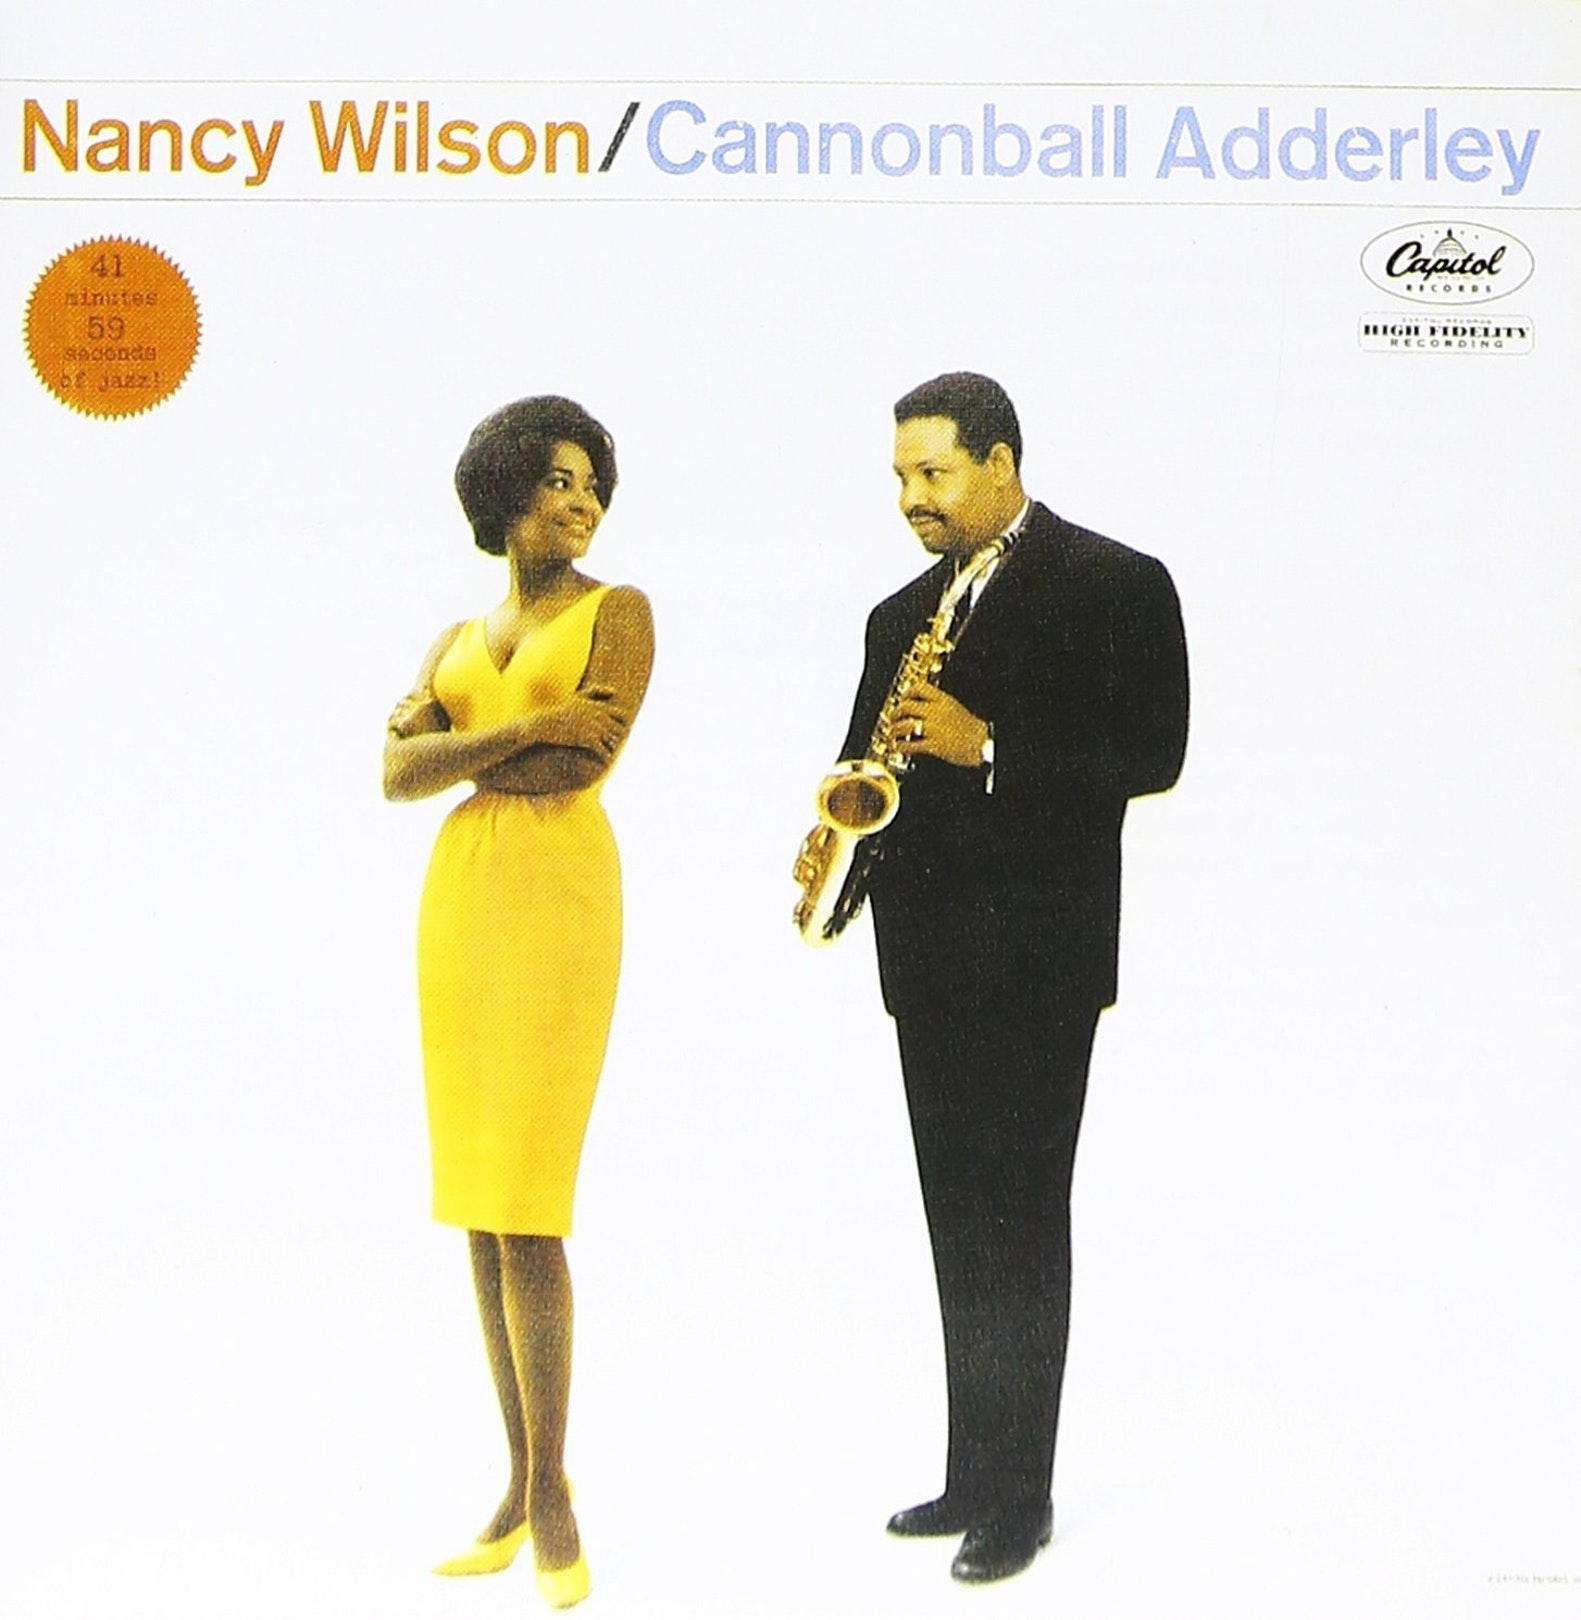 The 10 Best Cannonball Adderley Albums To Own On Vinyl